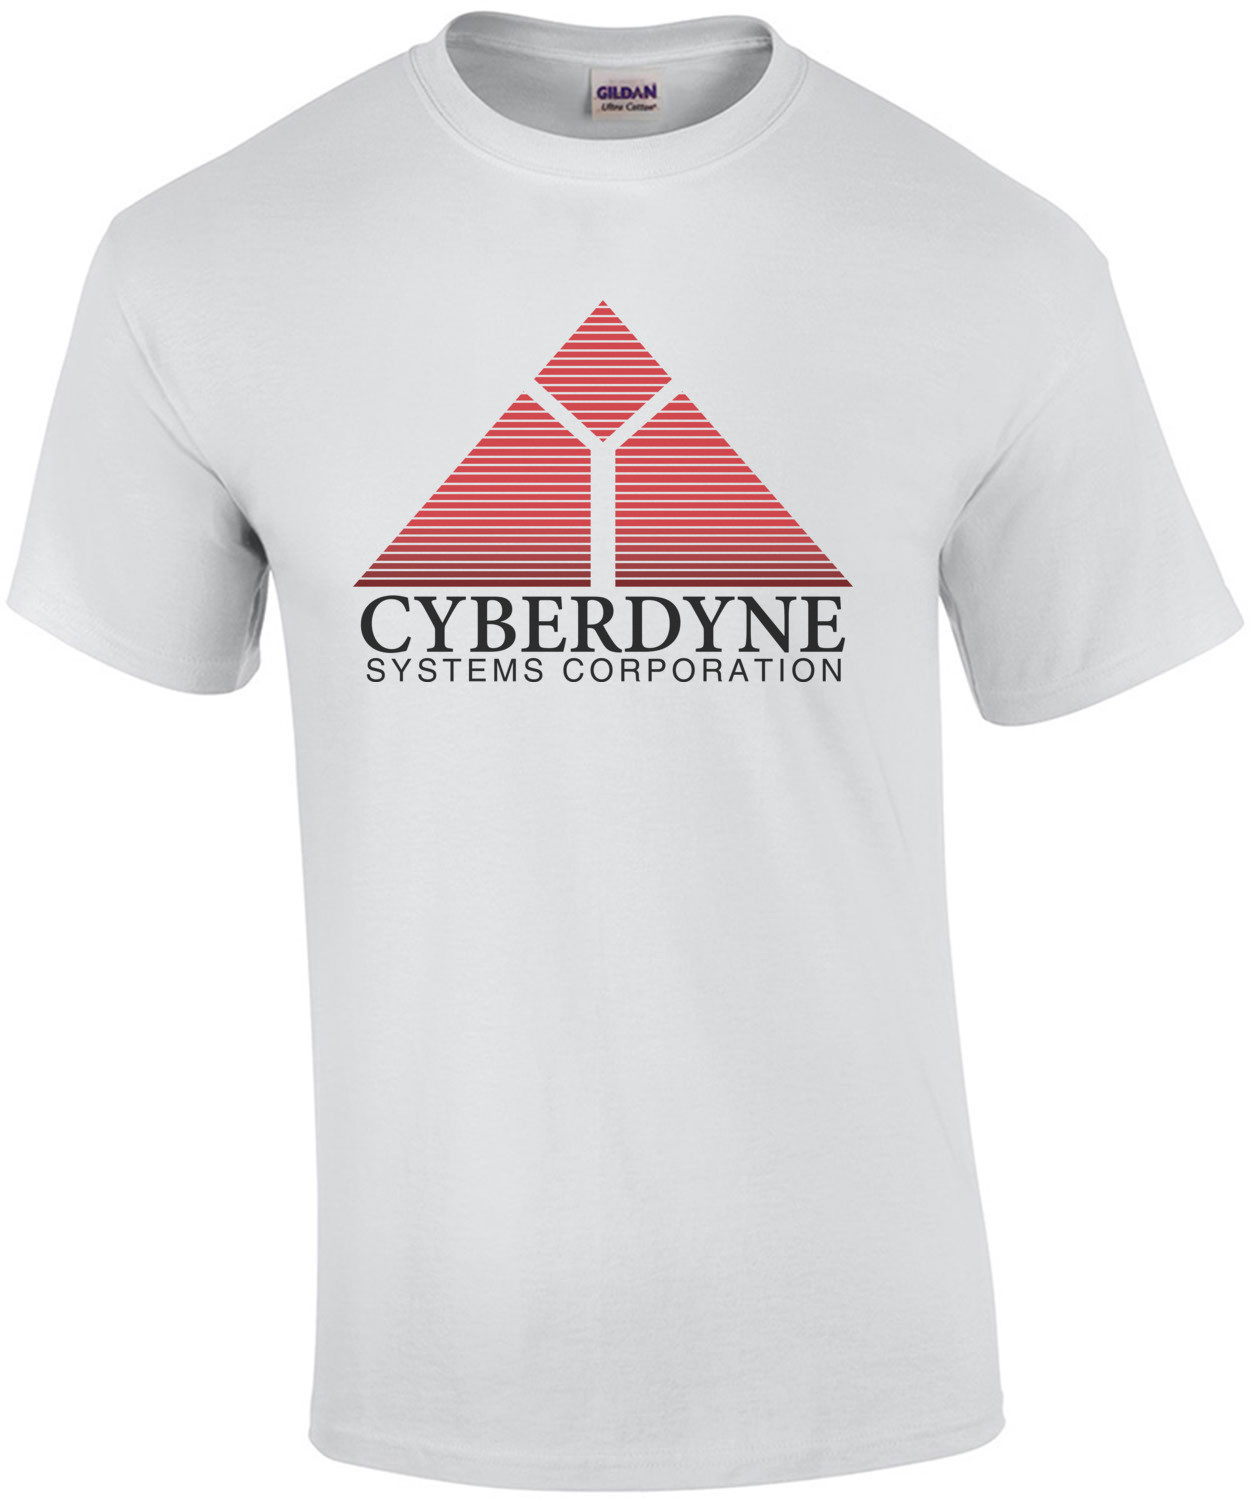 Cyberdyne Systems Corporation - Terminator T-Shirt